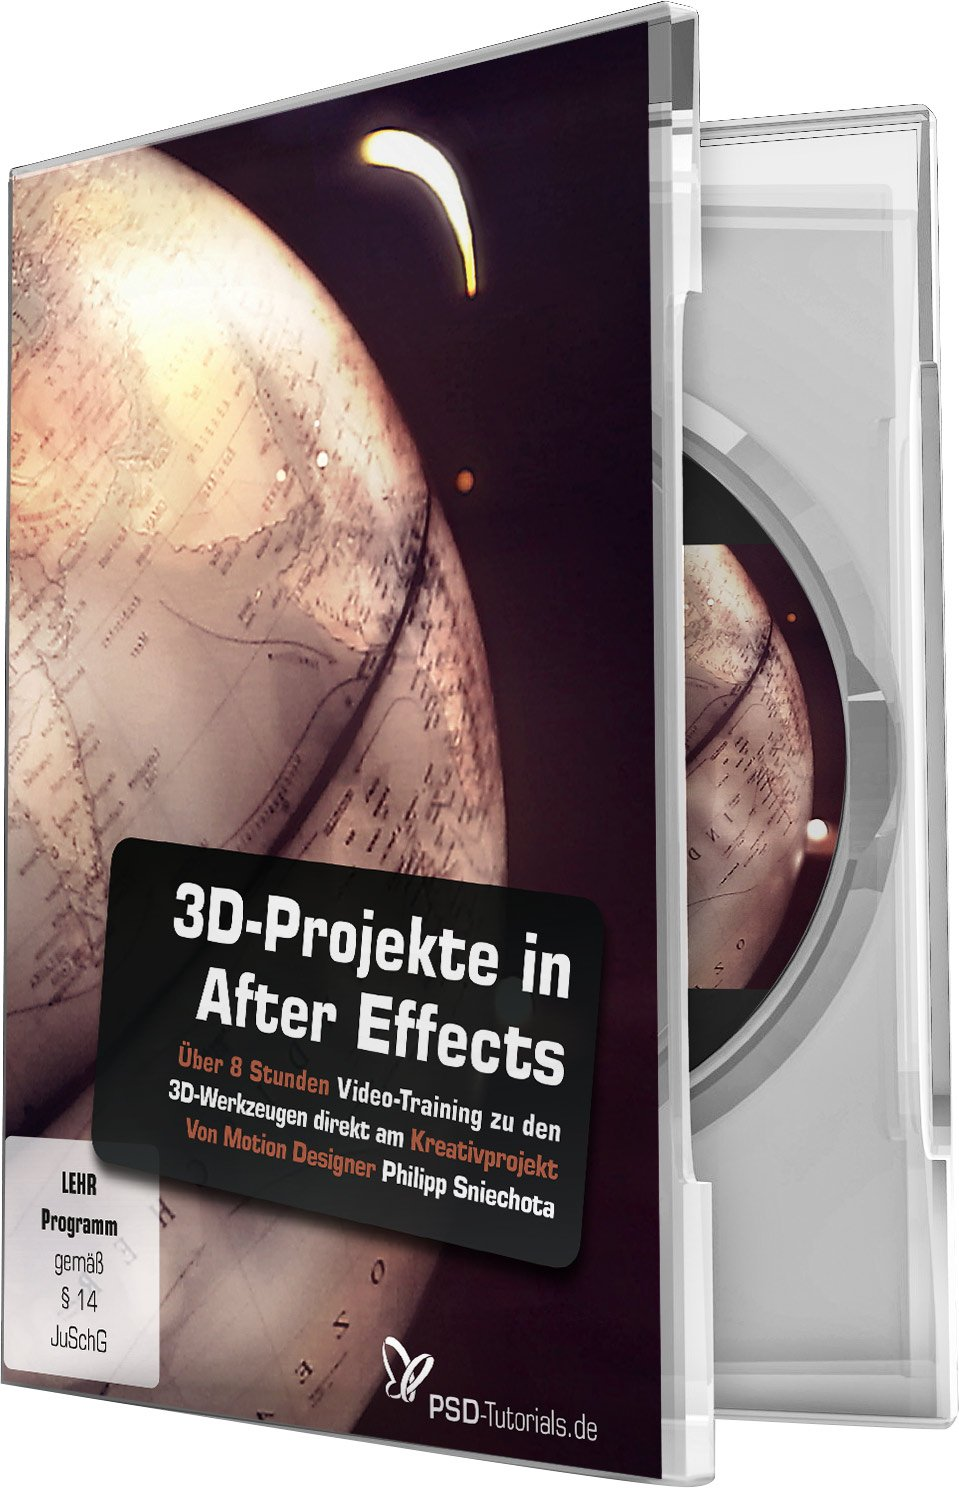 3D-Projekte in After Effects: So laufen Kundenprojekte in der Praxis